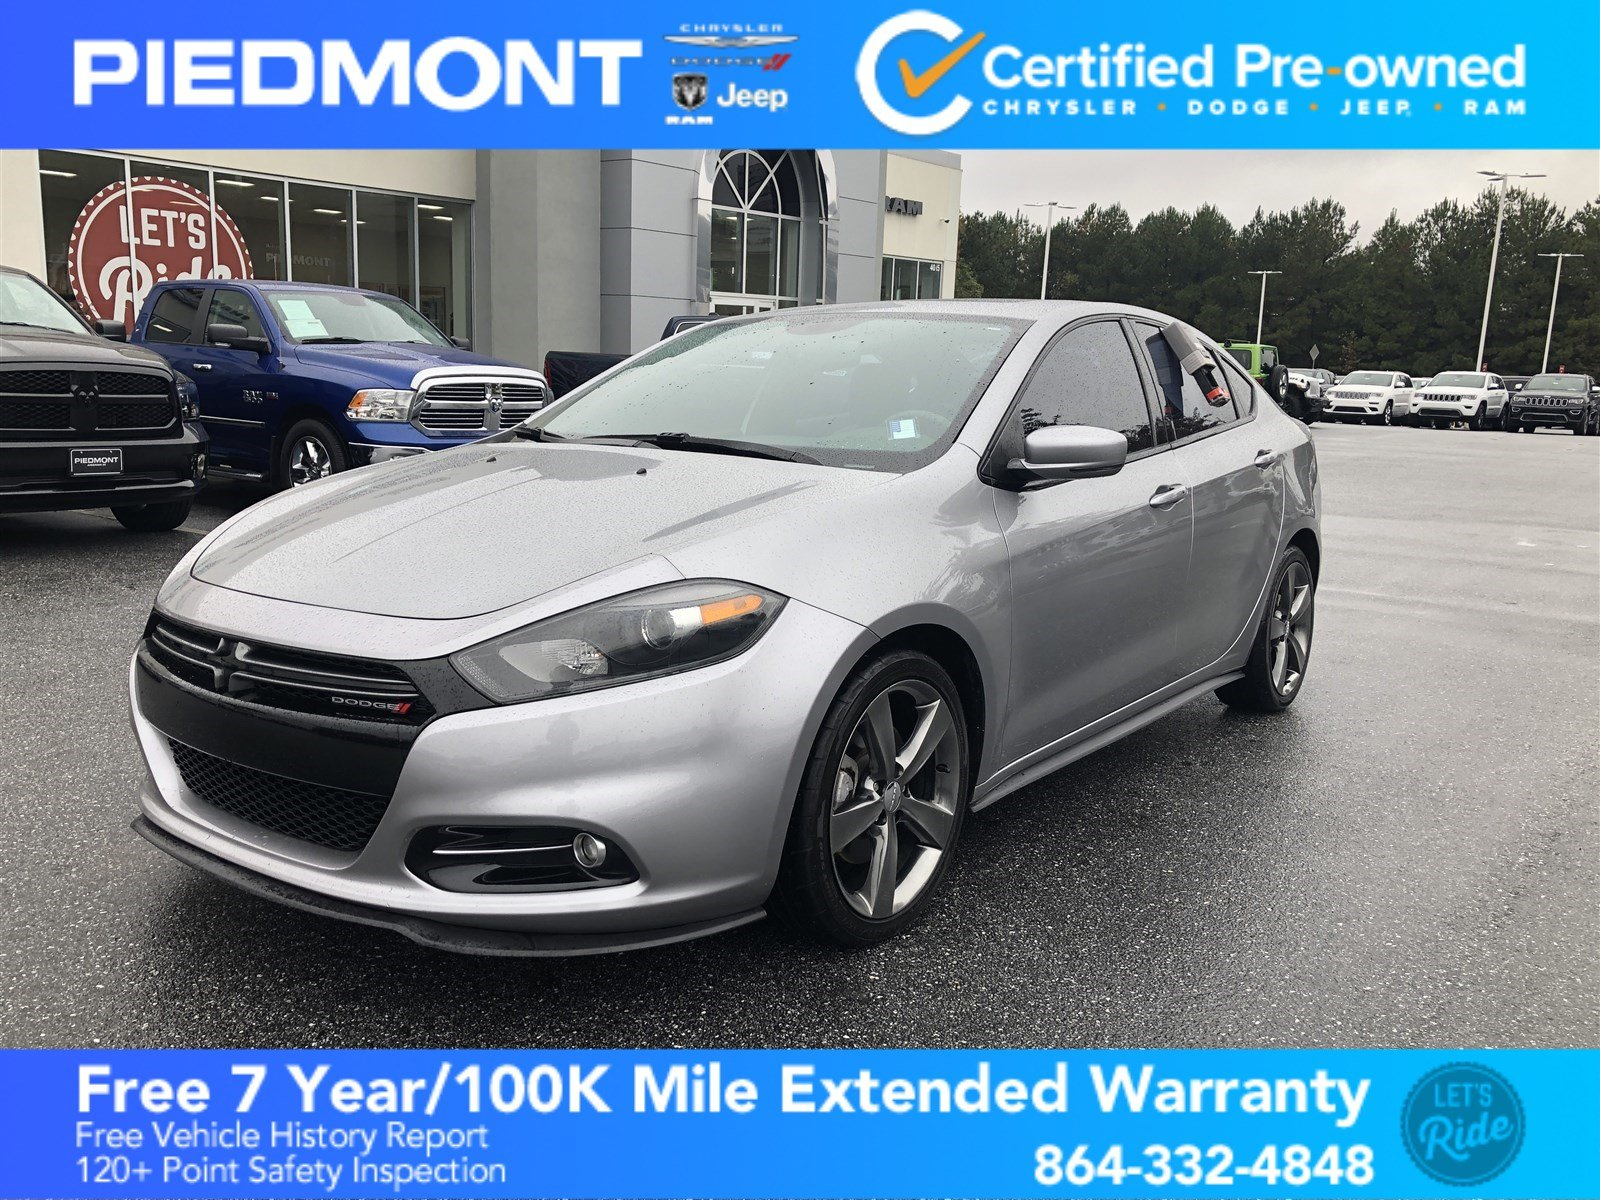 Certified Pre-Owned 2015 Dodge Dart 4dr Sdn GT